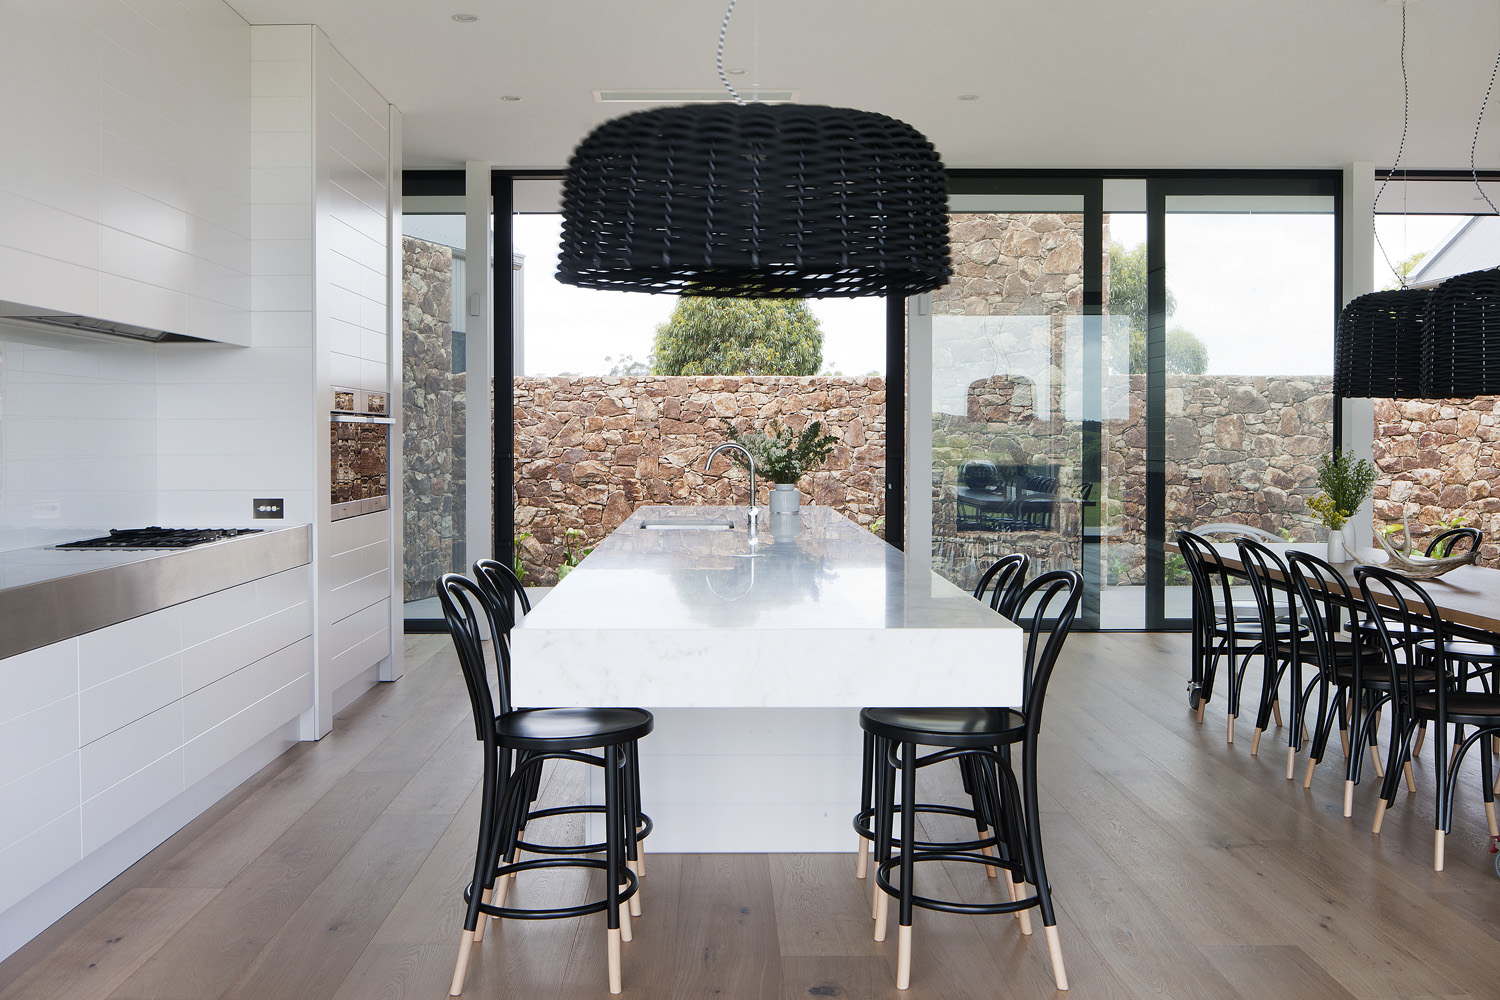 ED'S FAVE A thick stone slab in the kitchen brings a luxe element into the minimalist interior